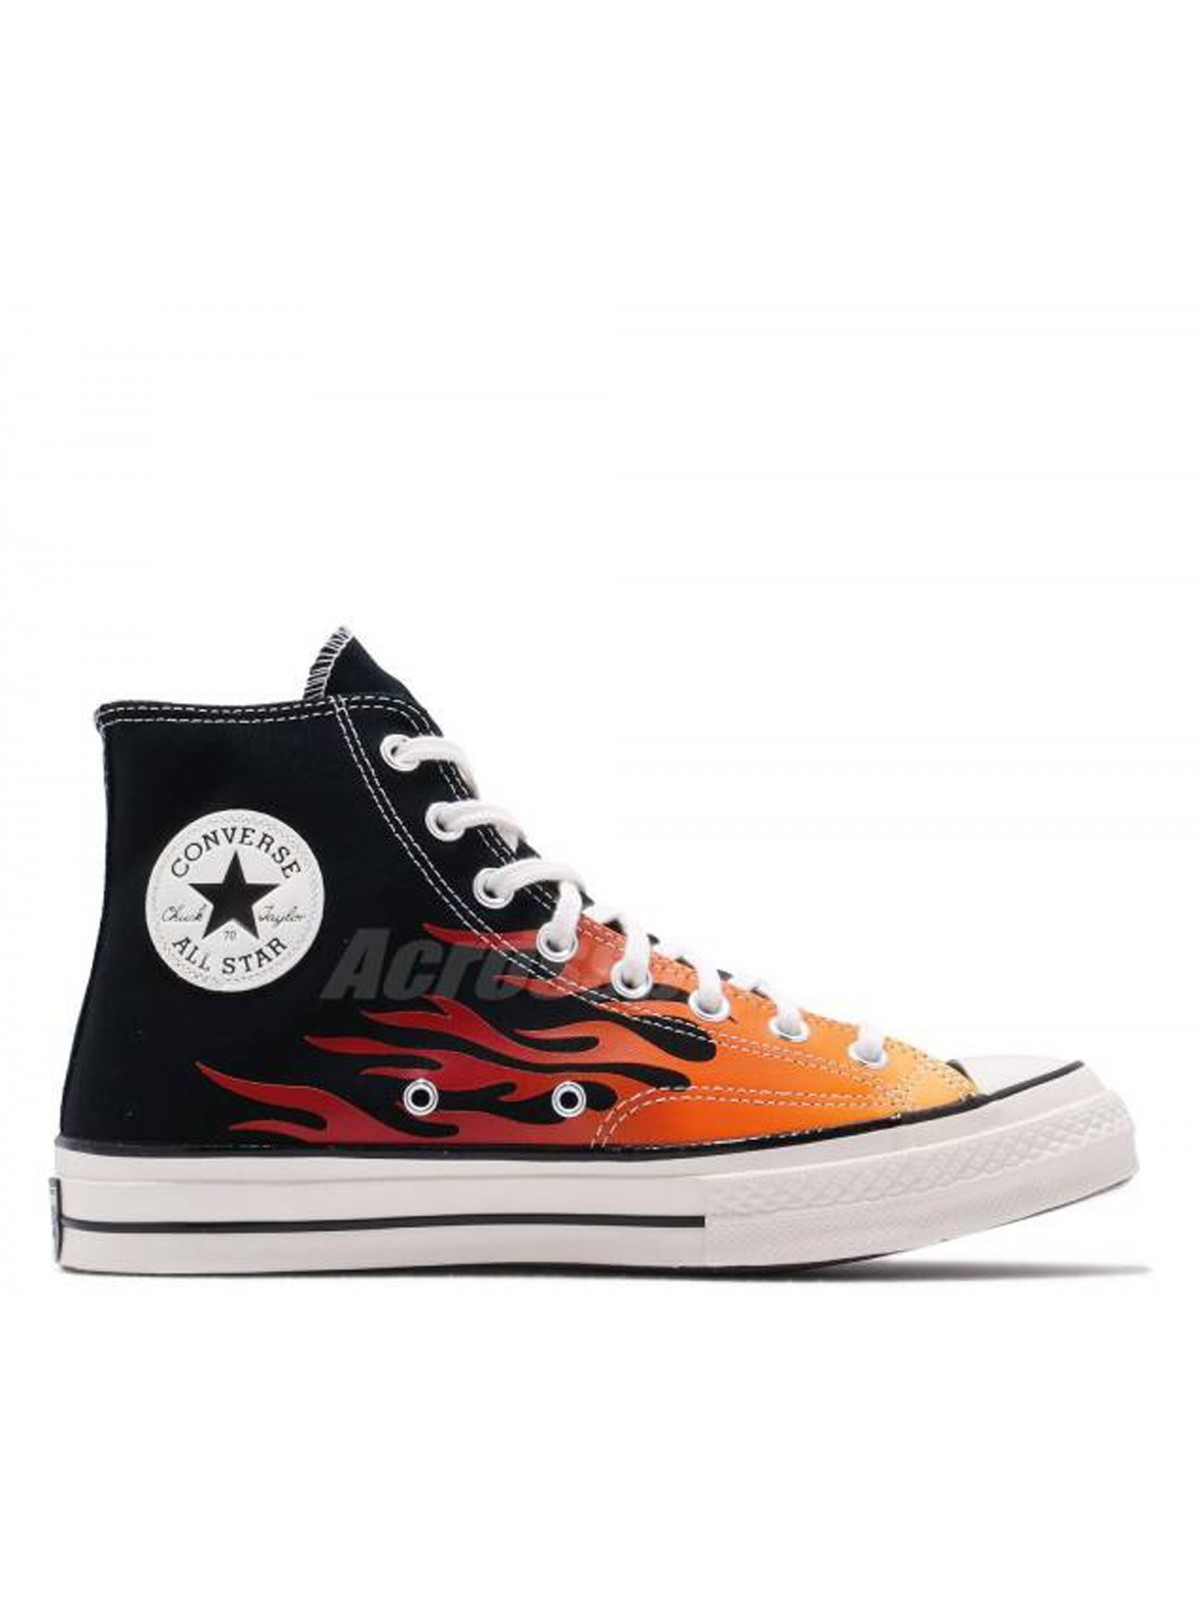 Converse Chuck Taylor all star toile flamme